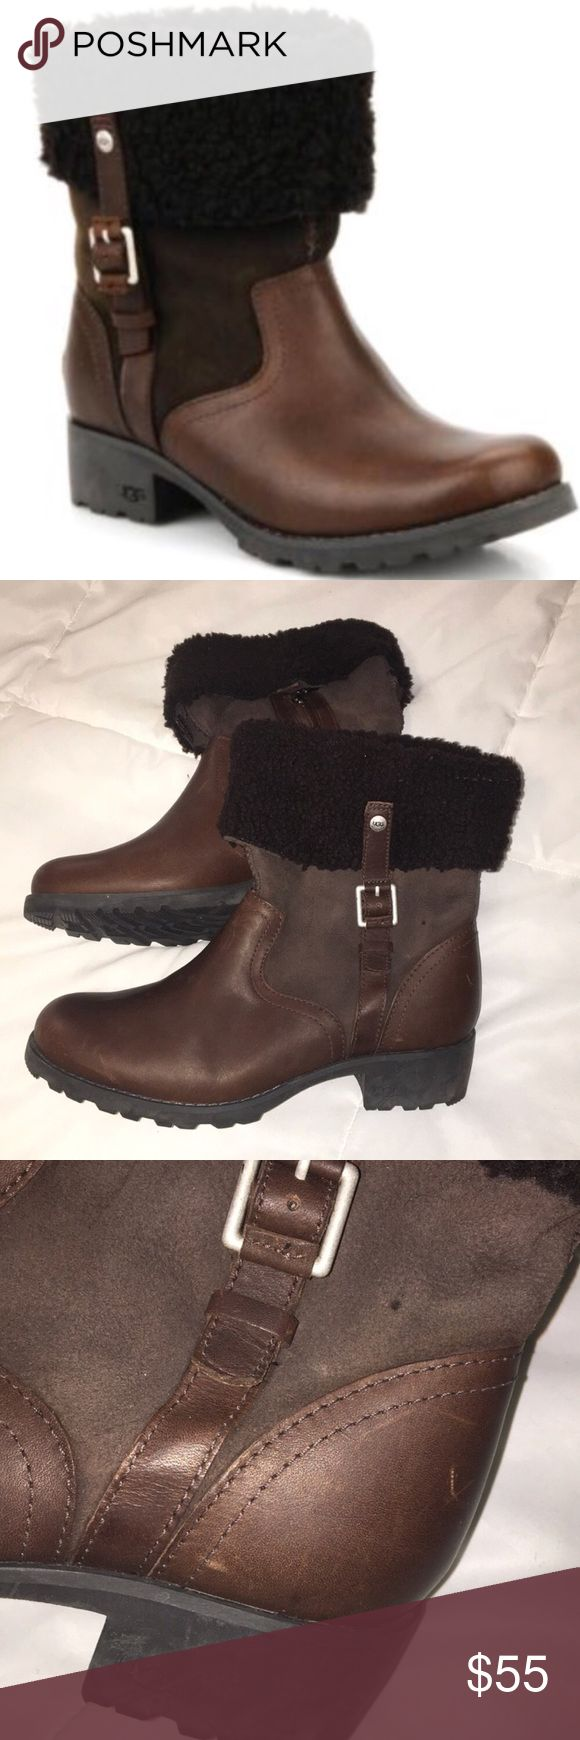 Ugg Bellvue Moro Boot Good Loved Condition. Has wear and scratches etc. price reflects this. Purchase for $238 + Tax at The Ugg Store UGG Shoes Winter & Rain Boots